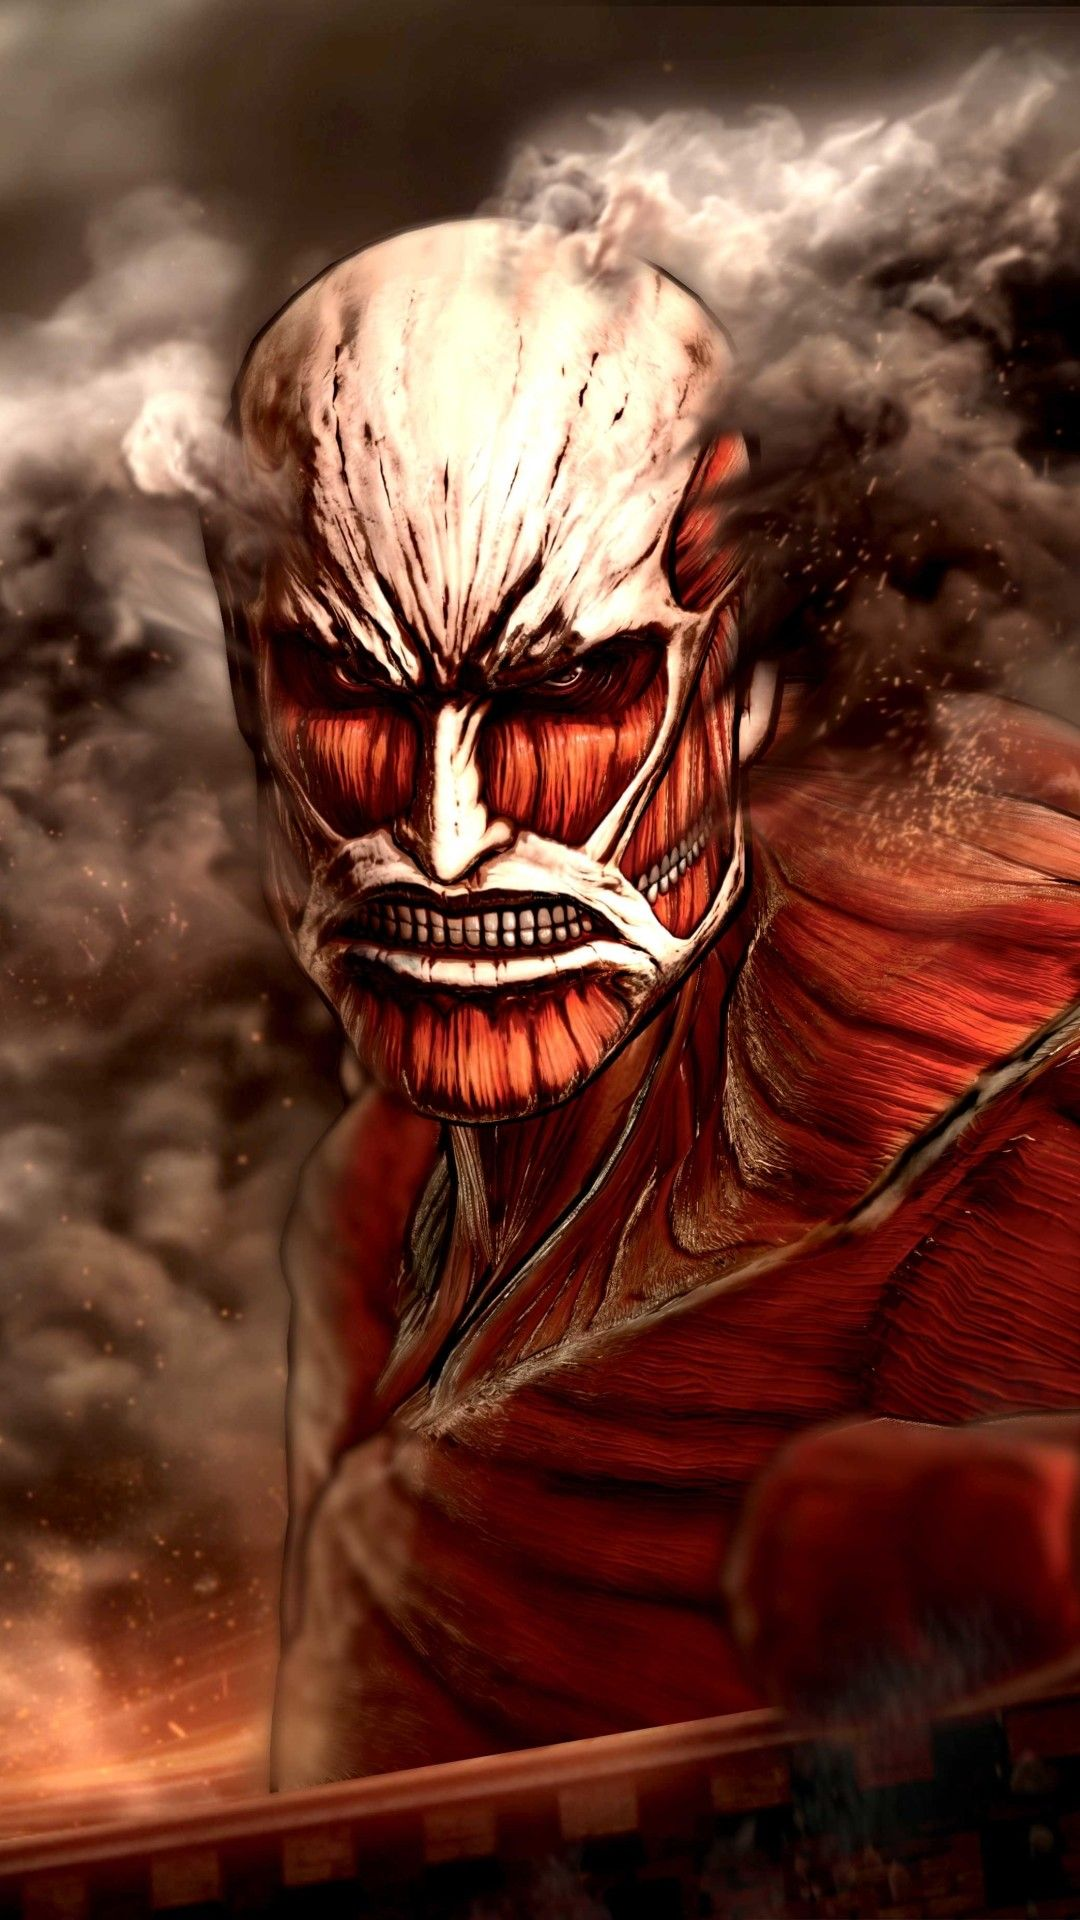 1080x1920 Wallpaper 643452 Attack On Titan Art Attack On Titan Anime Attack On Titan